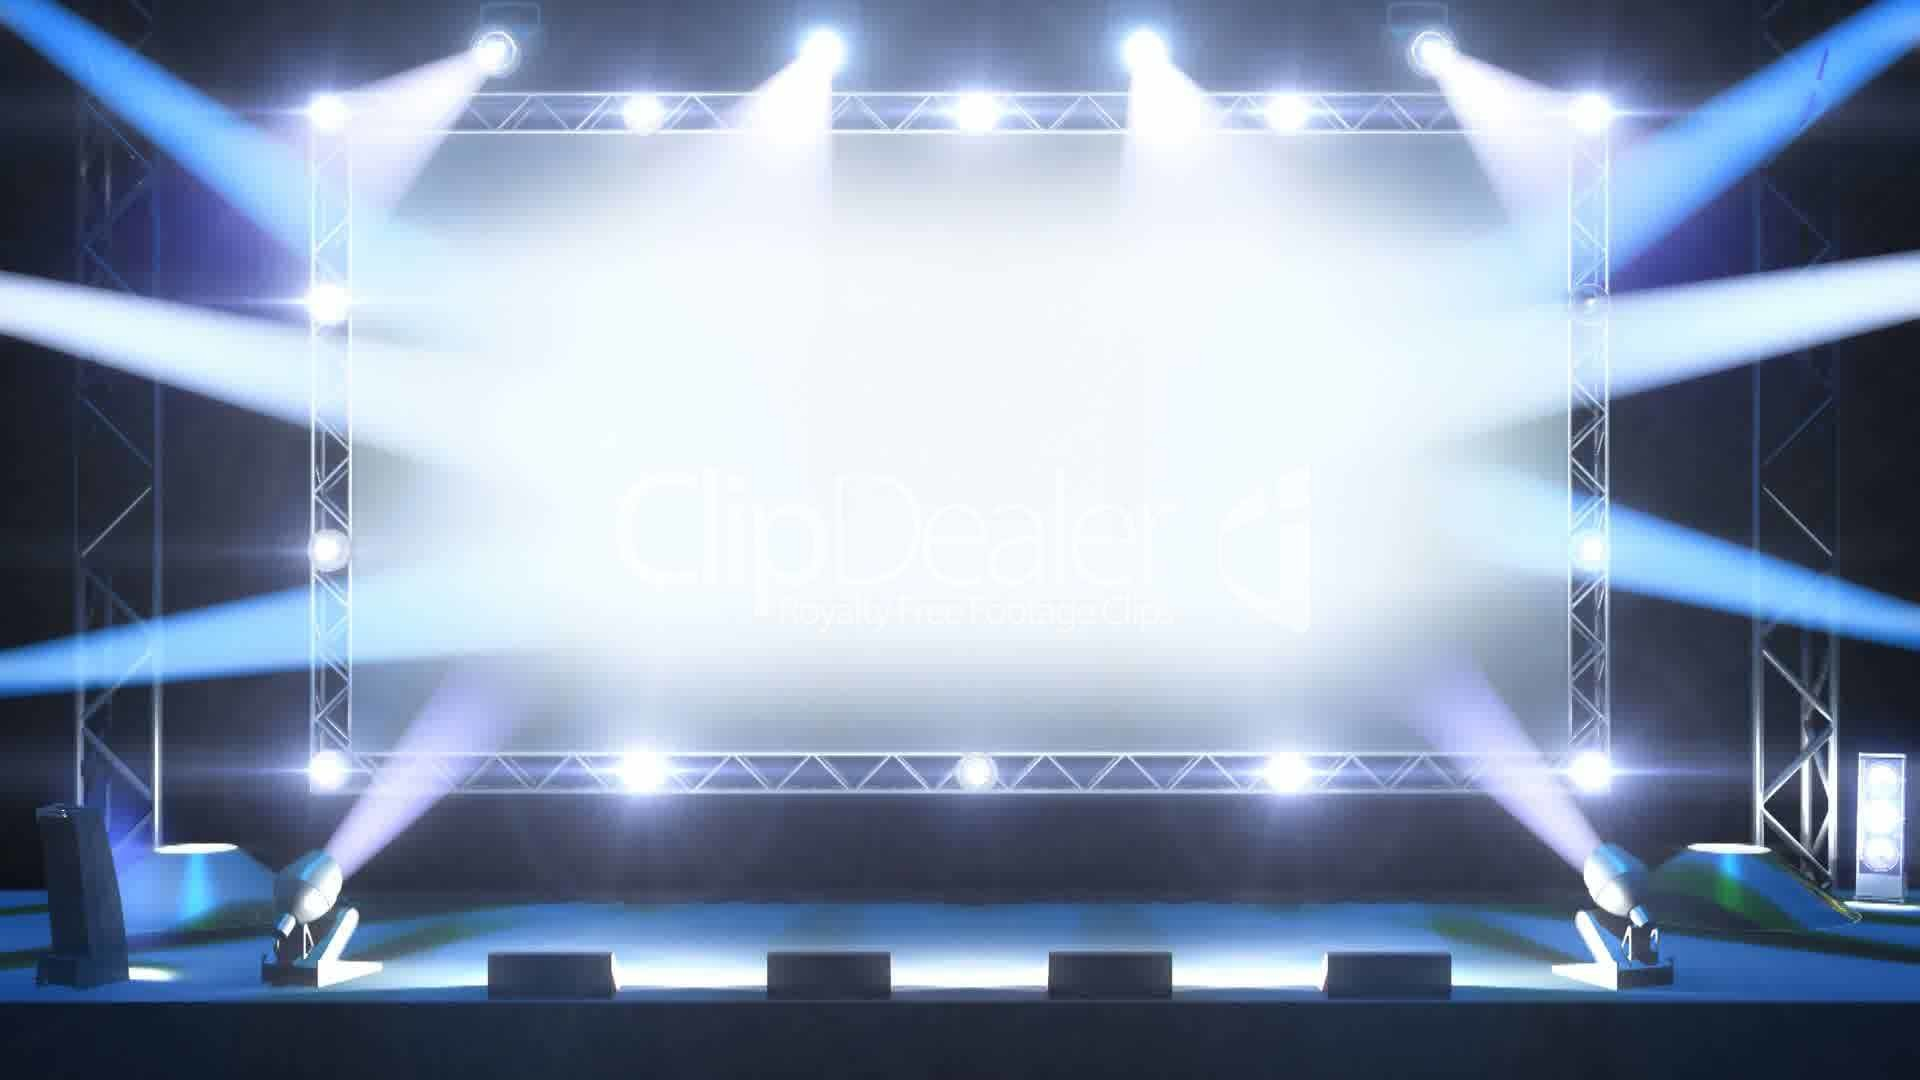 Concert Stage Wallpaper Related Keywords & Suggestions – Concert Stage